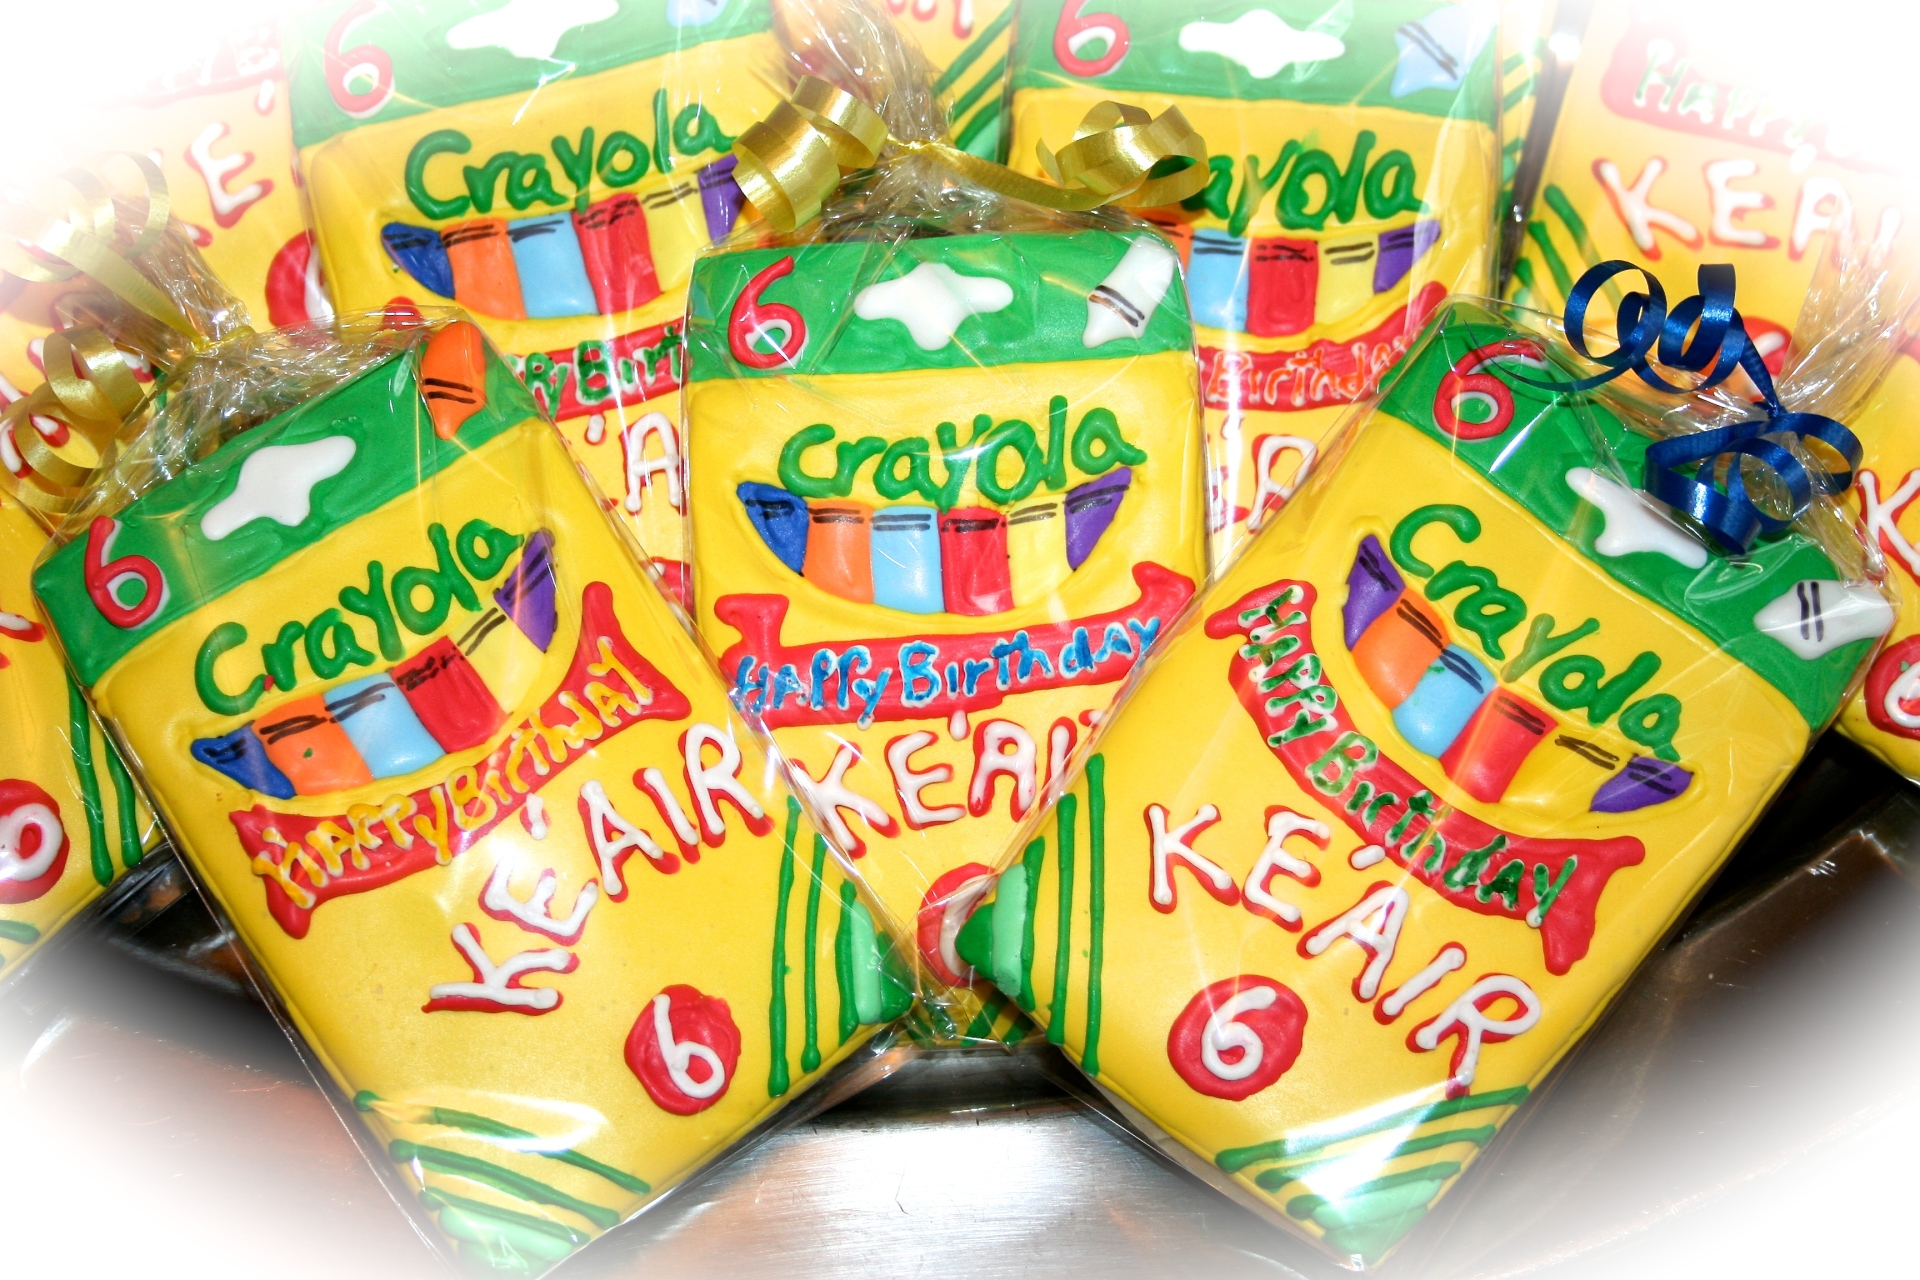 Crayola Box Sugar Cookies